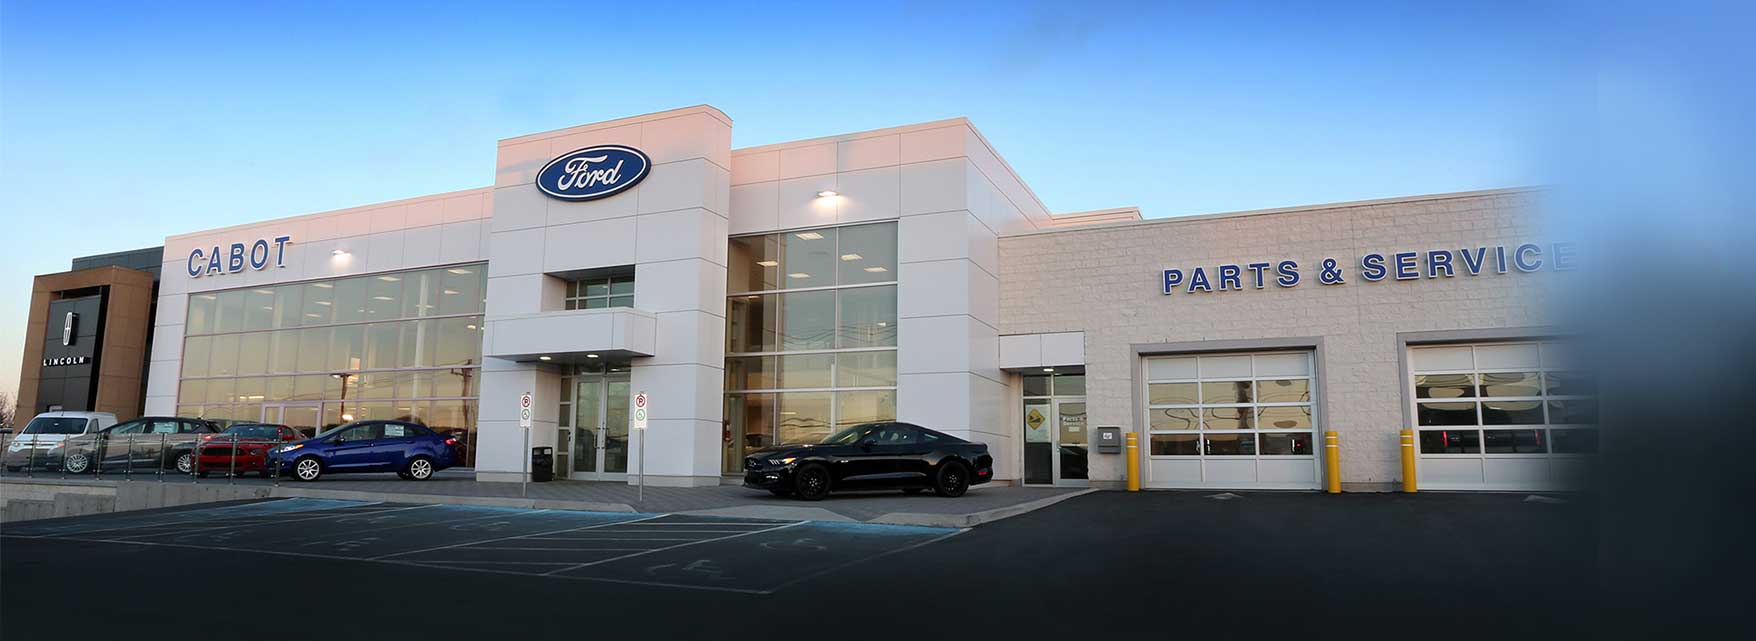 Your Ford dealership in St. John's